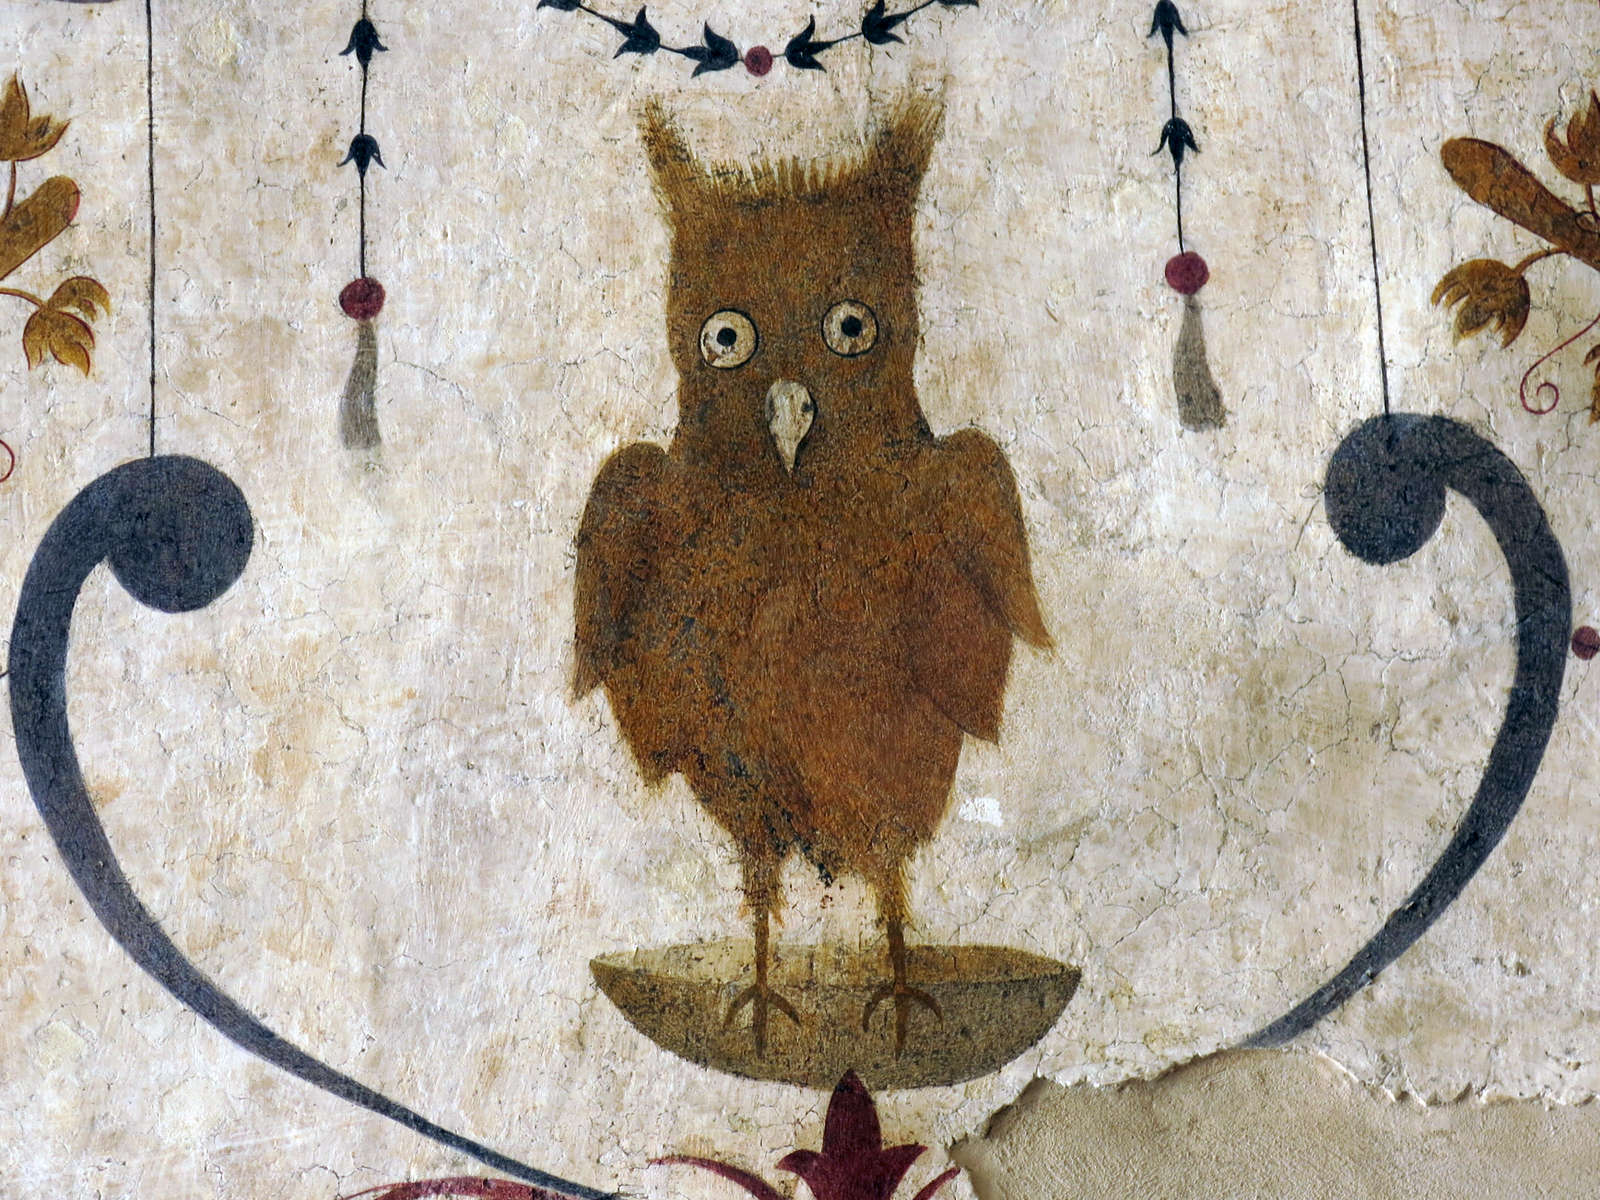 detail of a mural in Assisi, Italy which caught my eye pursuading me to look beyond the veil of dusk...